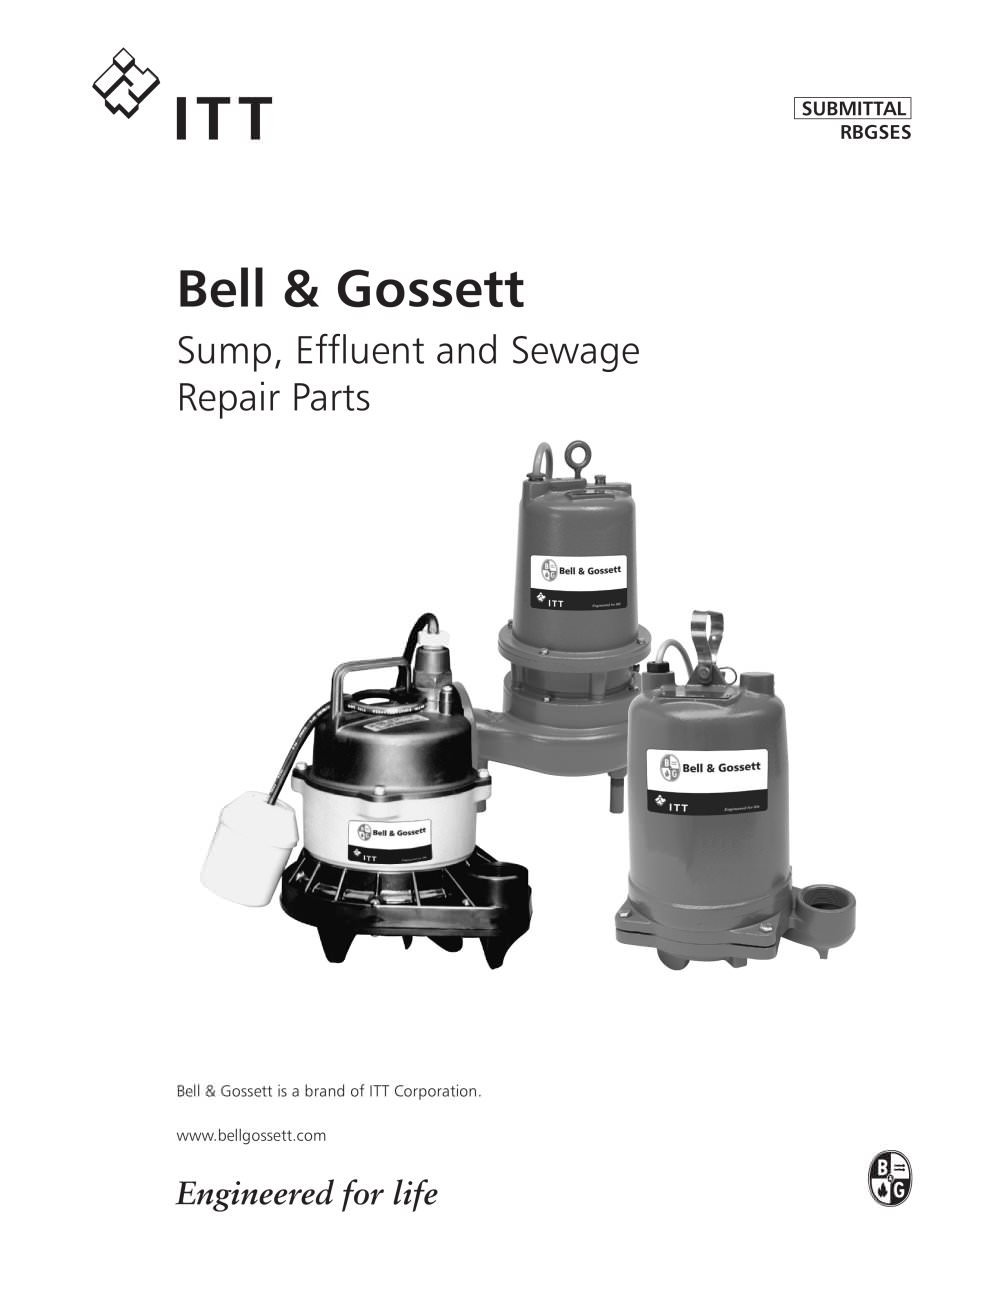 Sump Effluent And Sewage Repair Parts Bell Gossett Domestic Amp Wiring Diagram 1 44 Pages